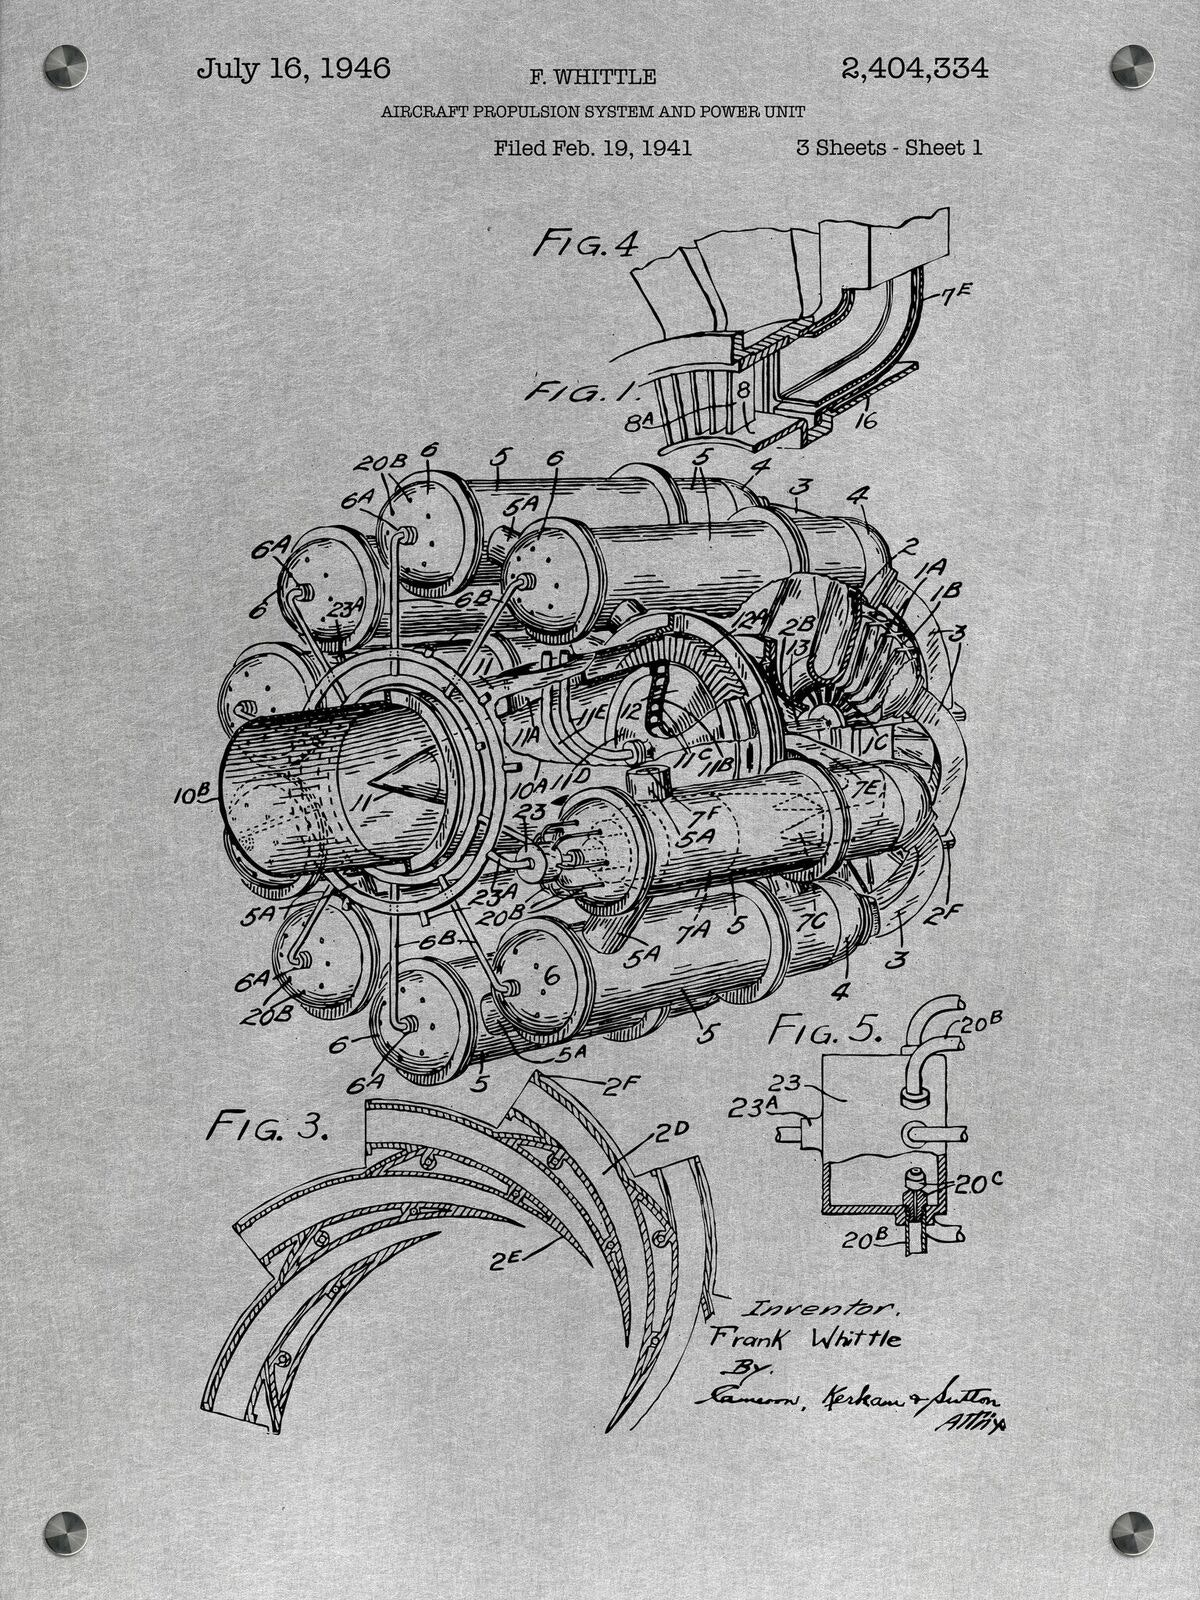 Aircraft Propulsion System and Power Unit